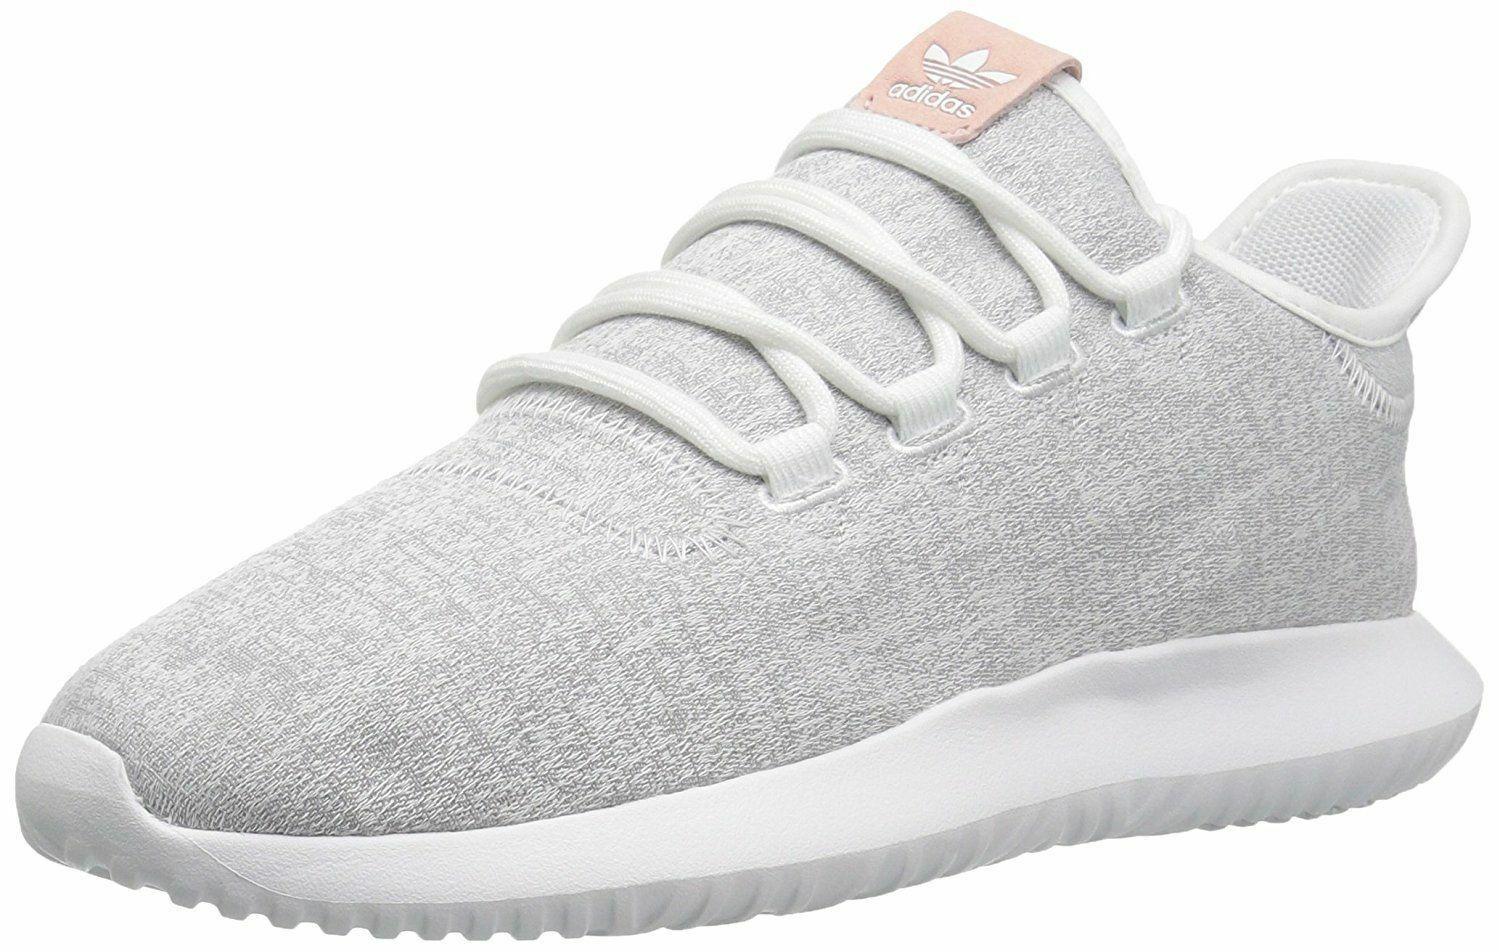 new arrival 010ba 6a5d1 ADIDAS TUBULAR SHADOW LOW SNEAKERS WOMEN SHOES WHITE GREY ...